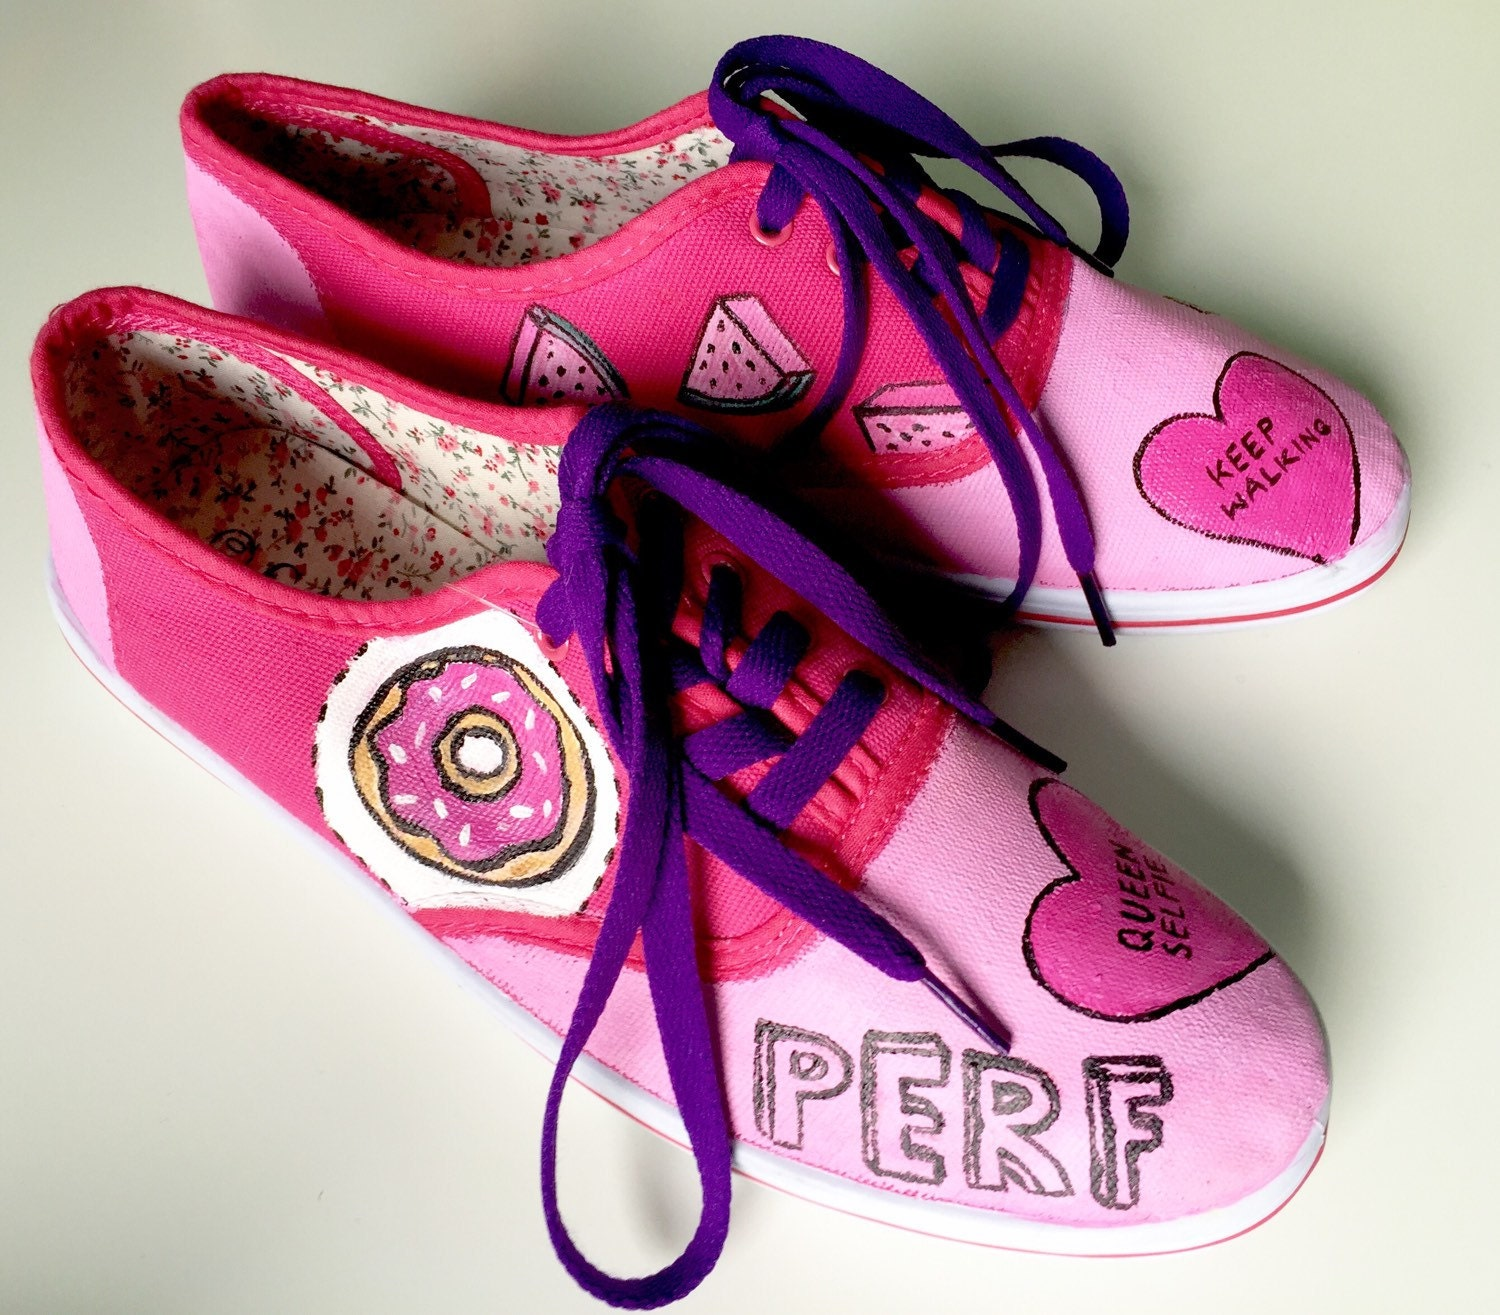 Tumblr Stickers Hand Painted Shoes Sneakers By KingaSyrek